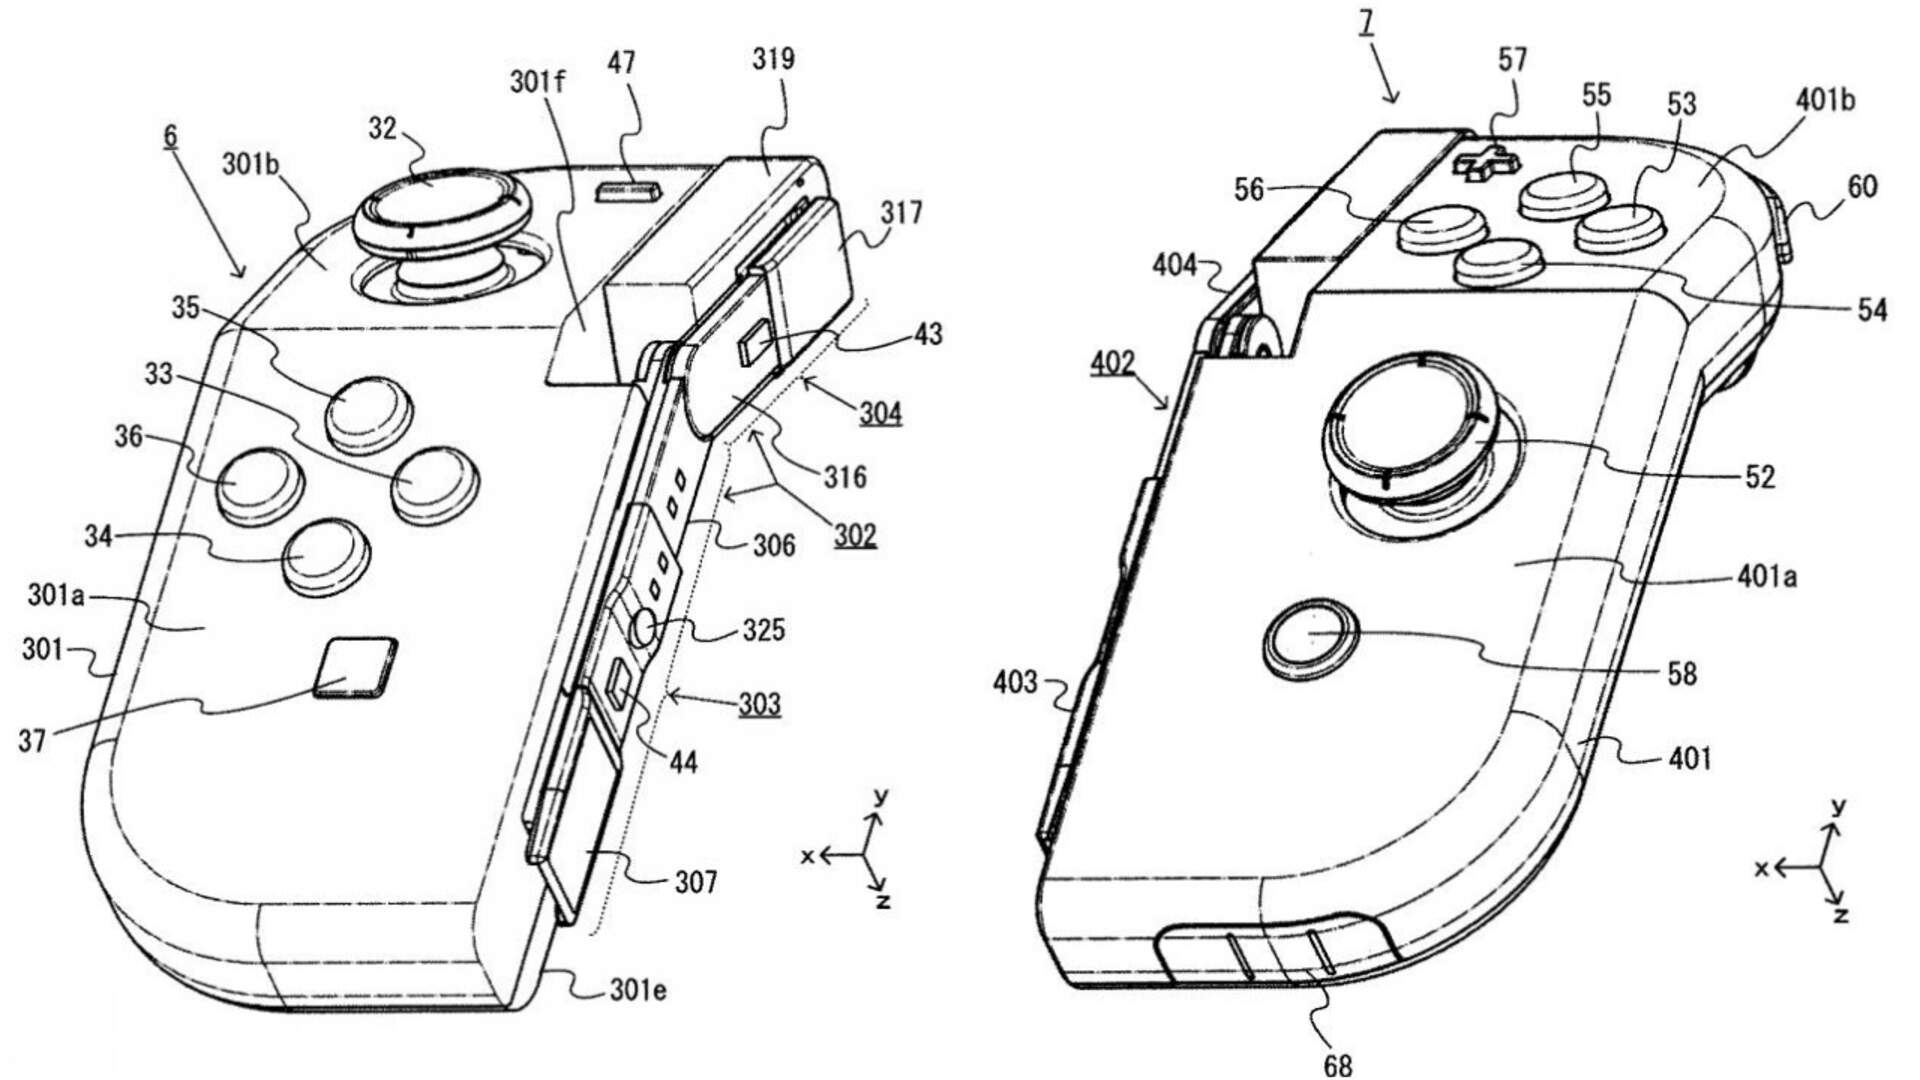 Nintendo Files Patent For What Looks Like a Hinged Joy-Con